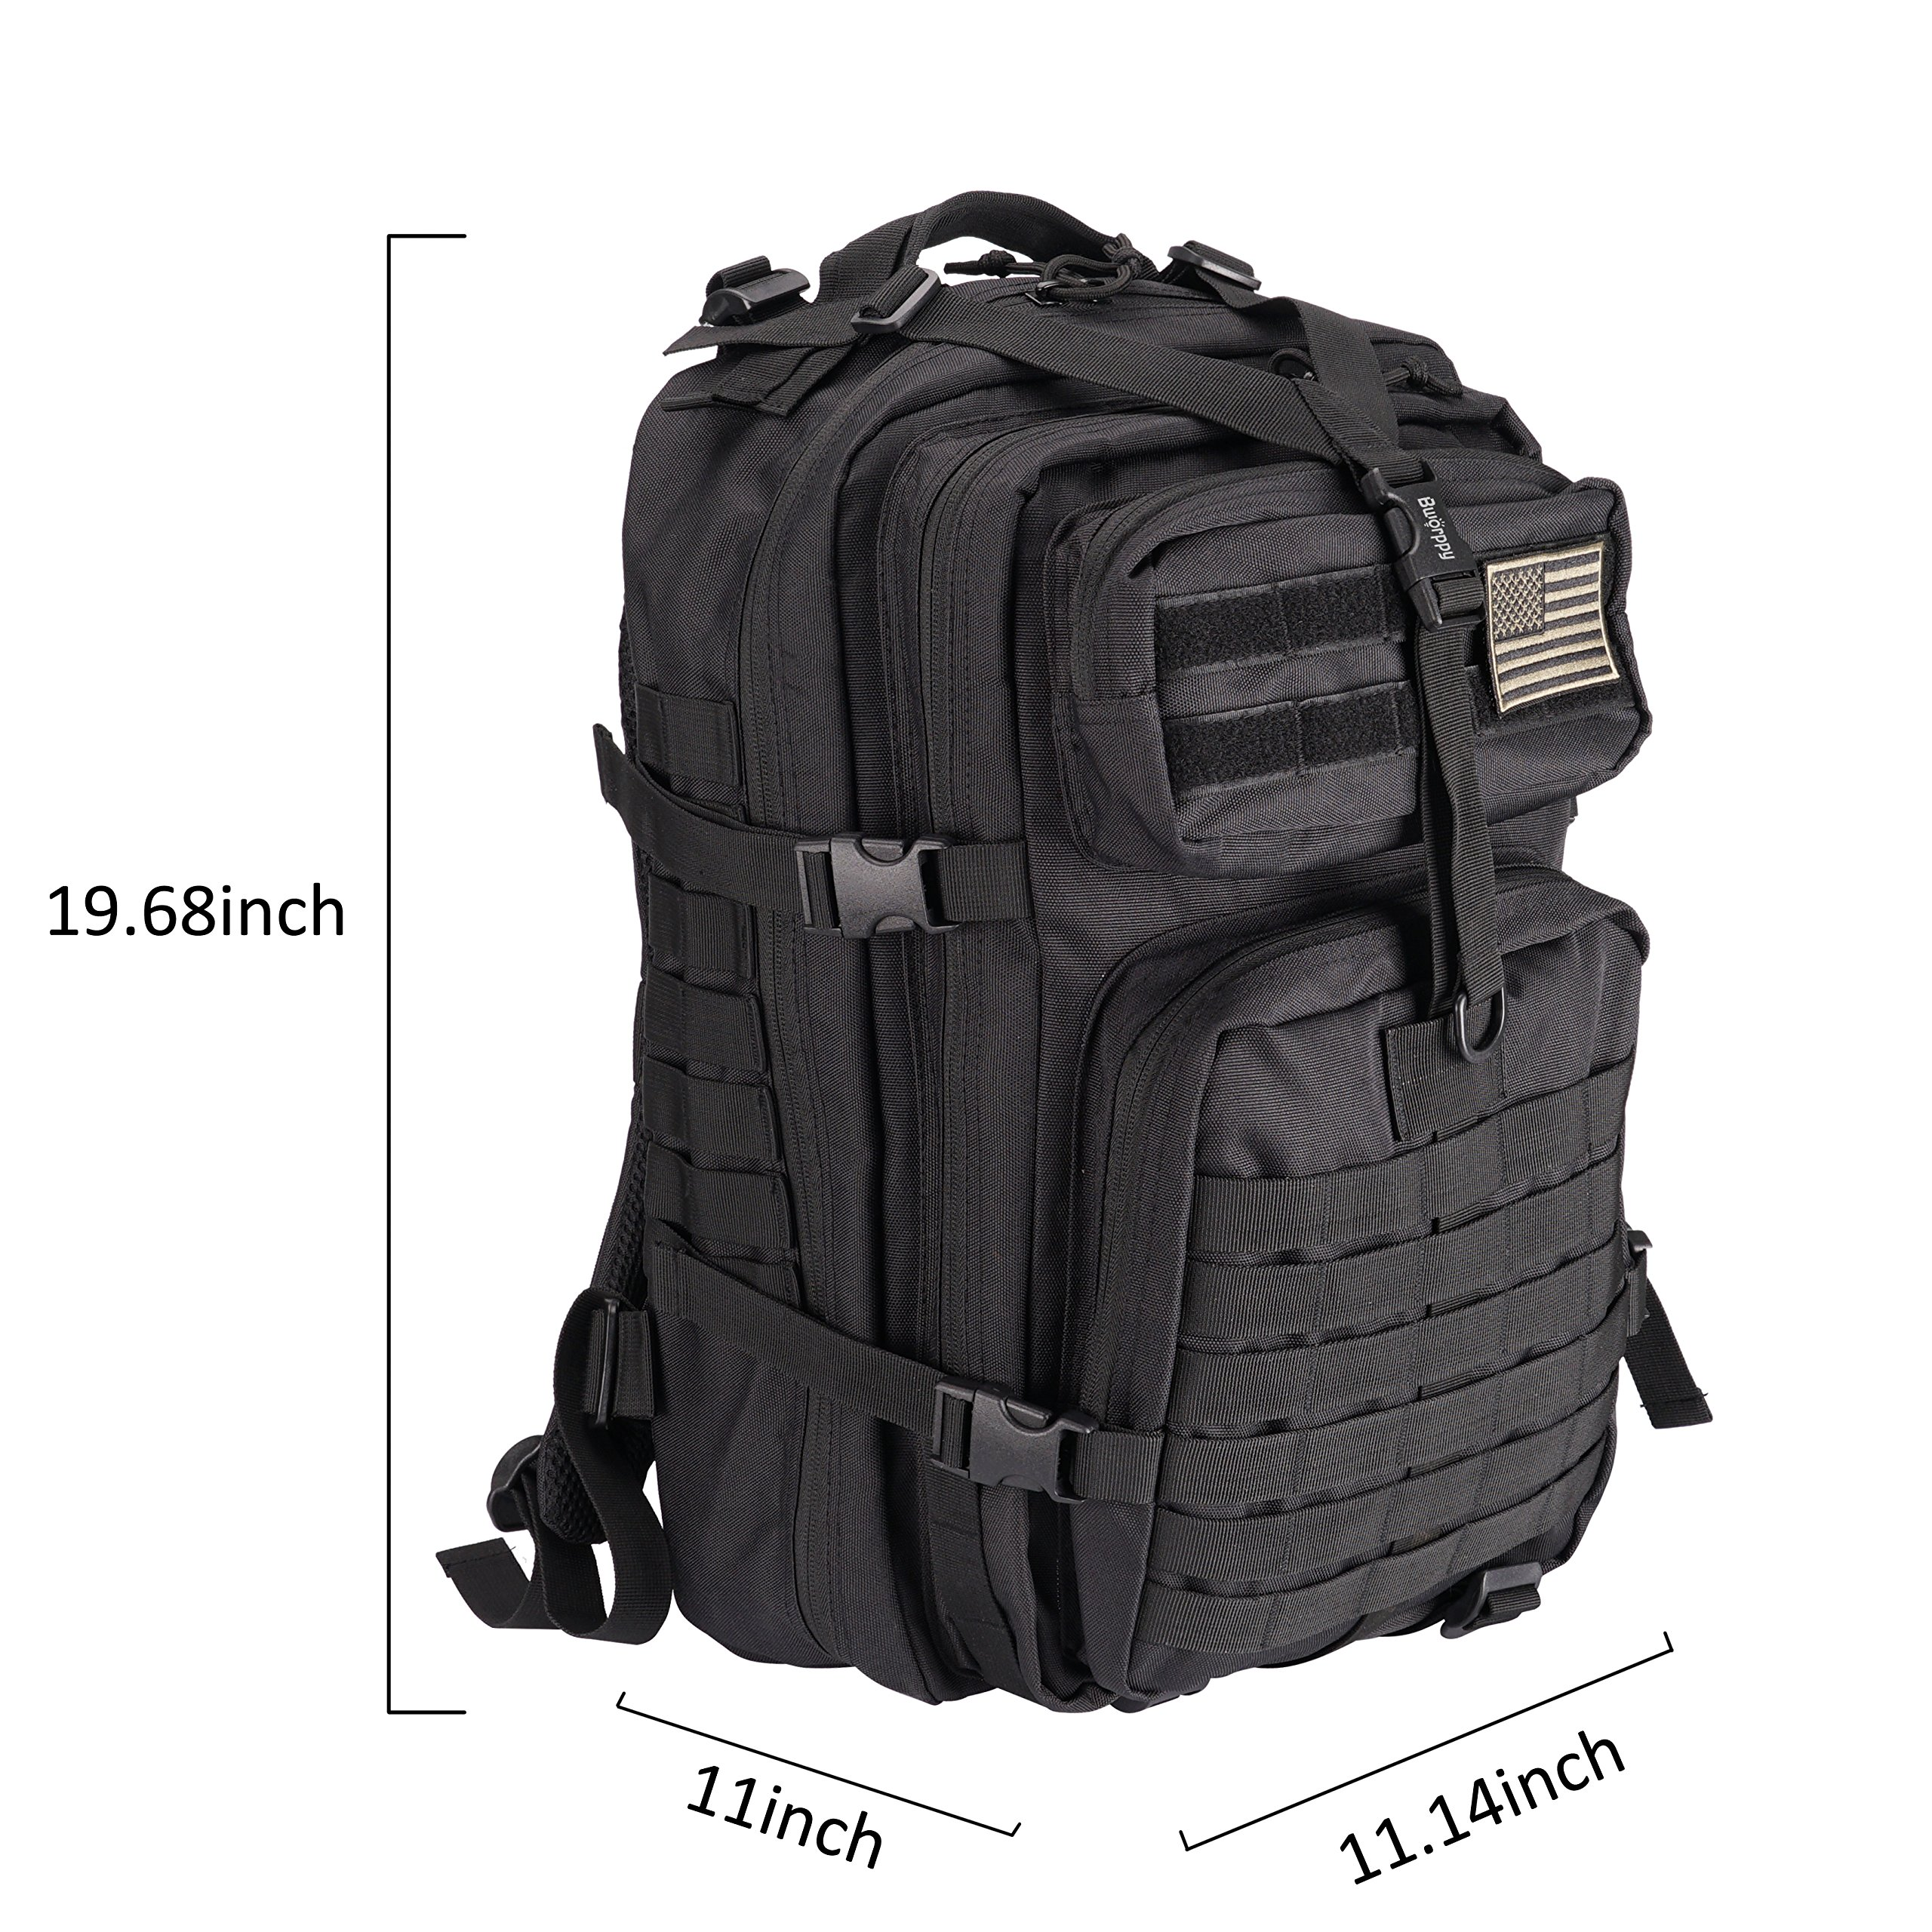 Bworppy Military Tactical Backpack, 40L Outdoor Rucksack, Waterproof 900D Oxford Fabric Assault Pack for Outdoor Hiking Camping Trekking Hunting by Bworppy (Image #2)